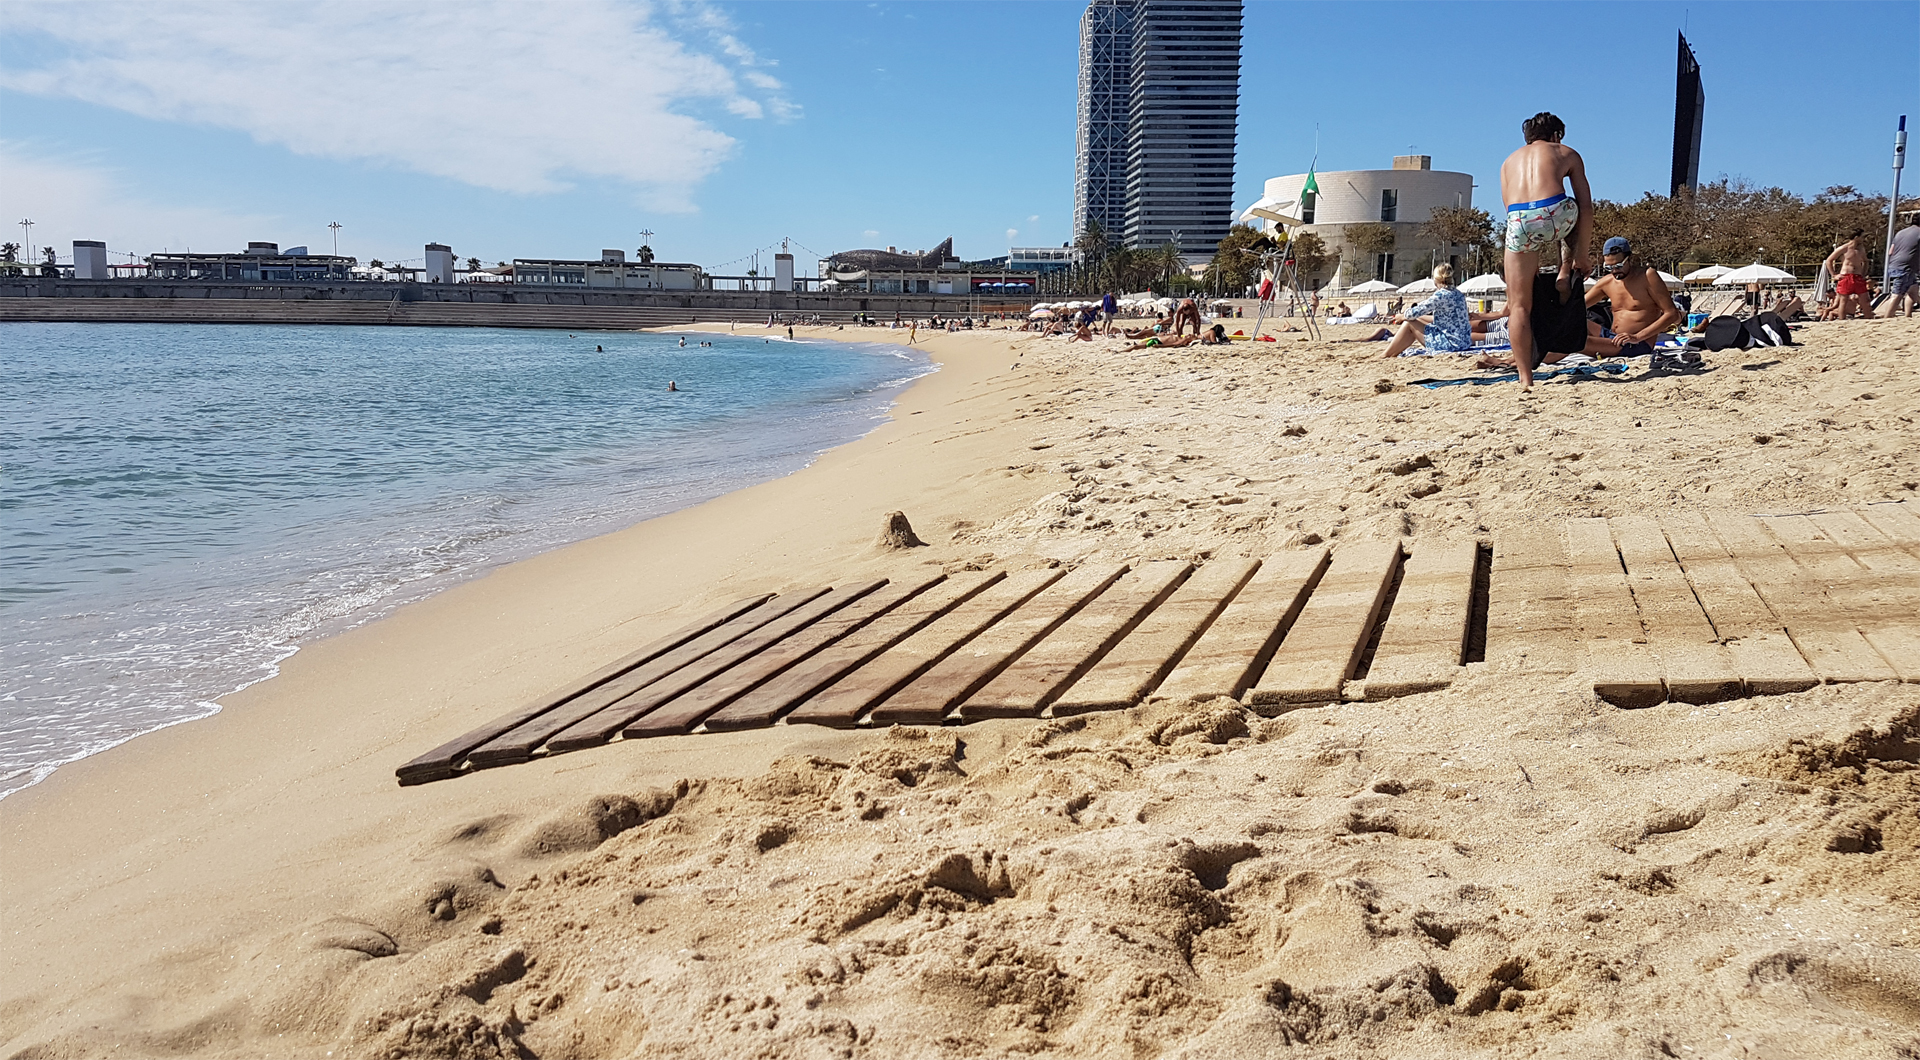 accessible-travel-guide-to-barcelona-Nova -icària-beach-barcelona-wooden-boardwalks